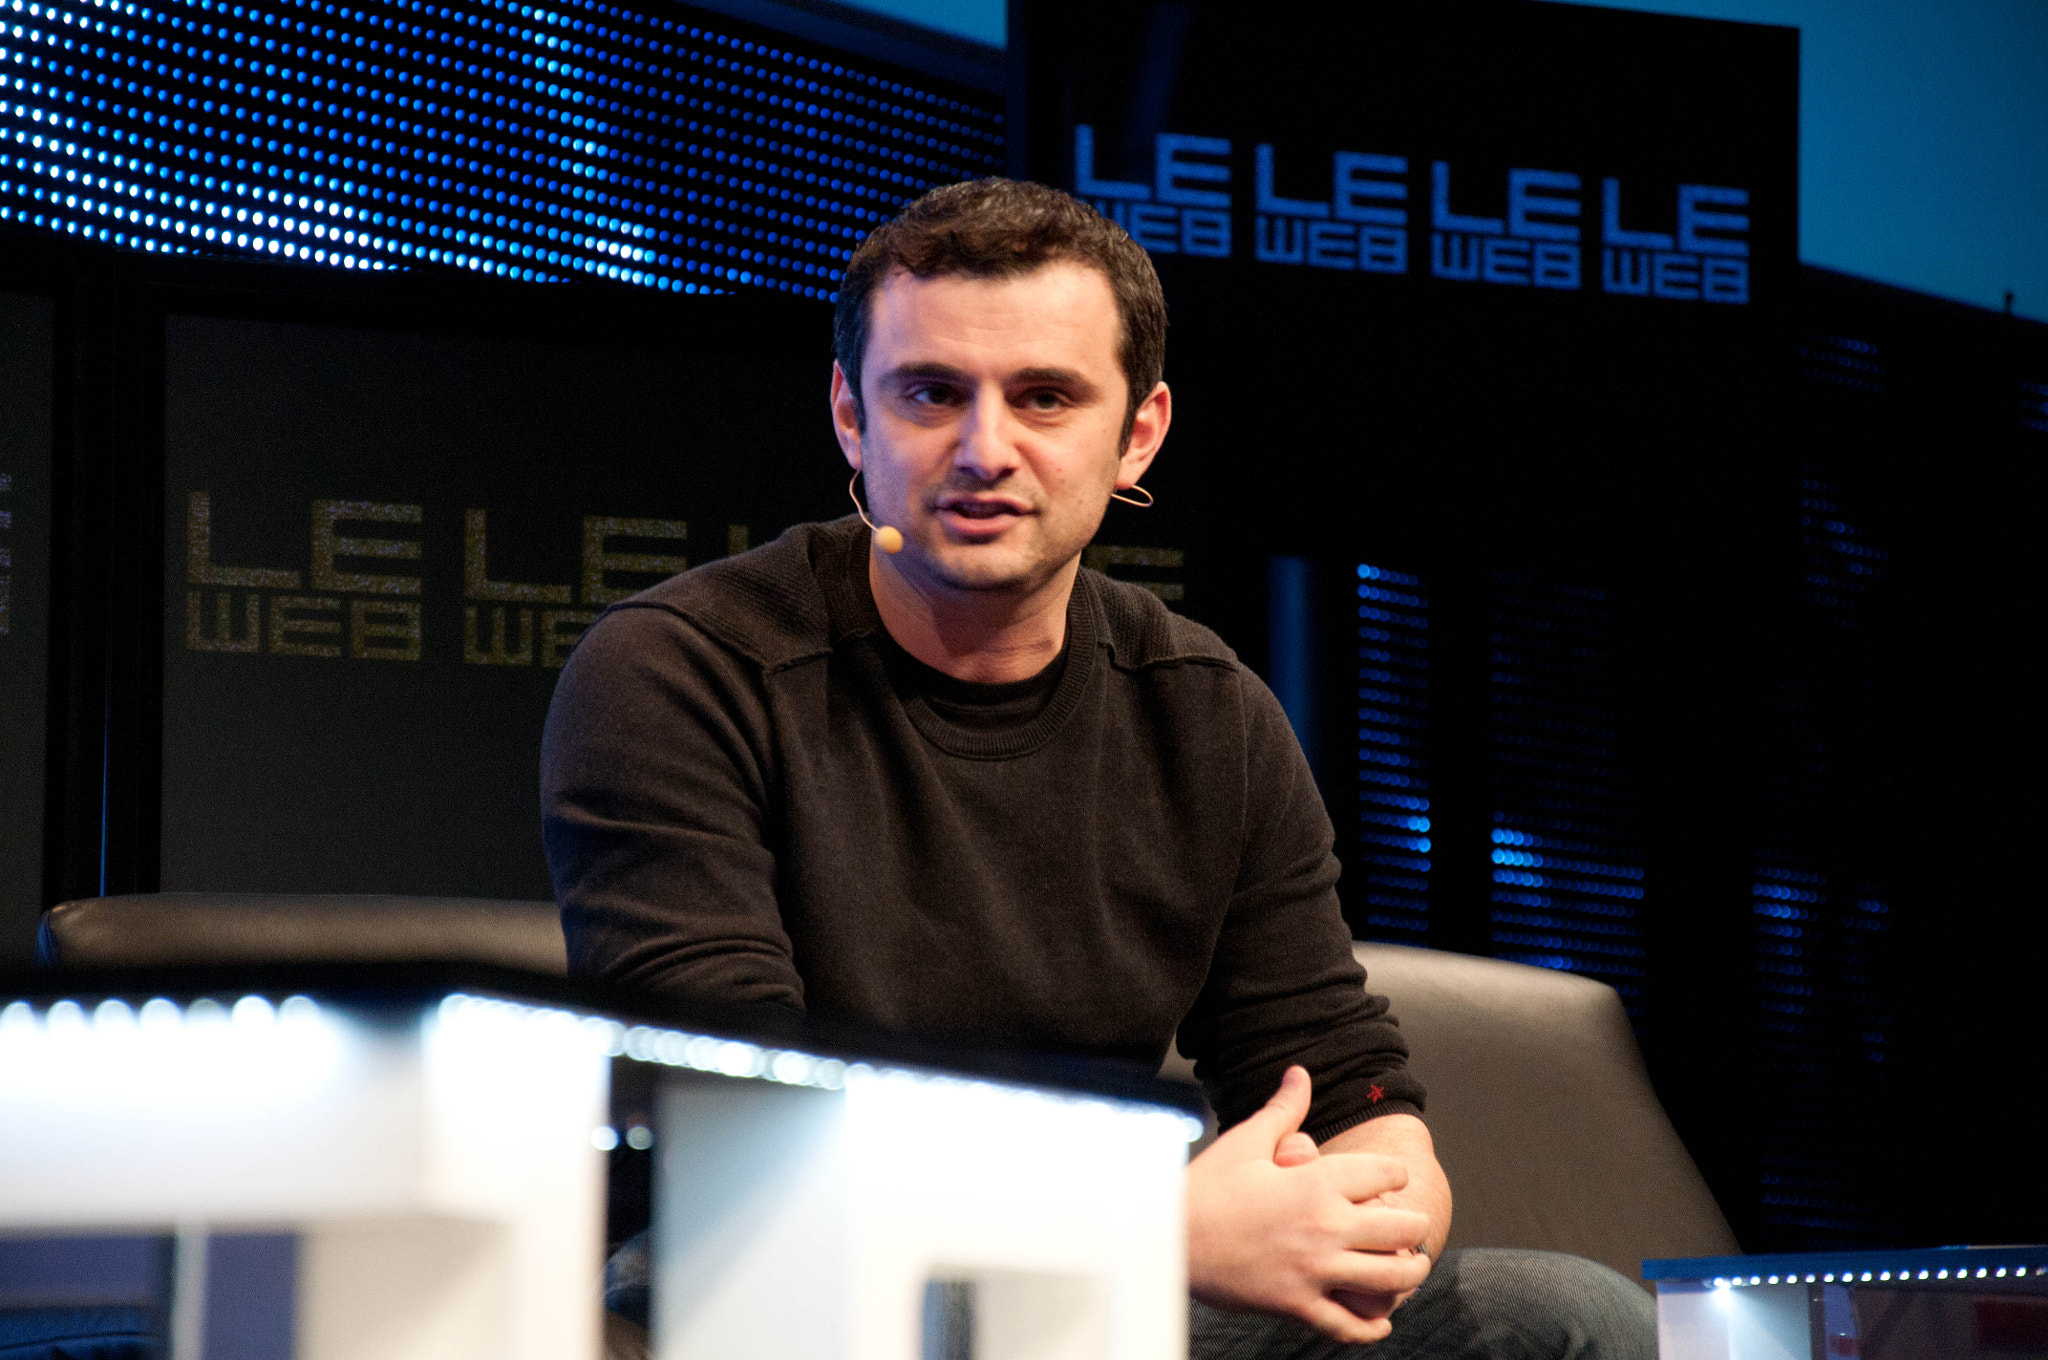 Photograph Gary Vaynerchuk @ LeWeb10 by Marco Kaiser on 500px